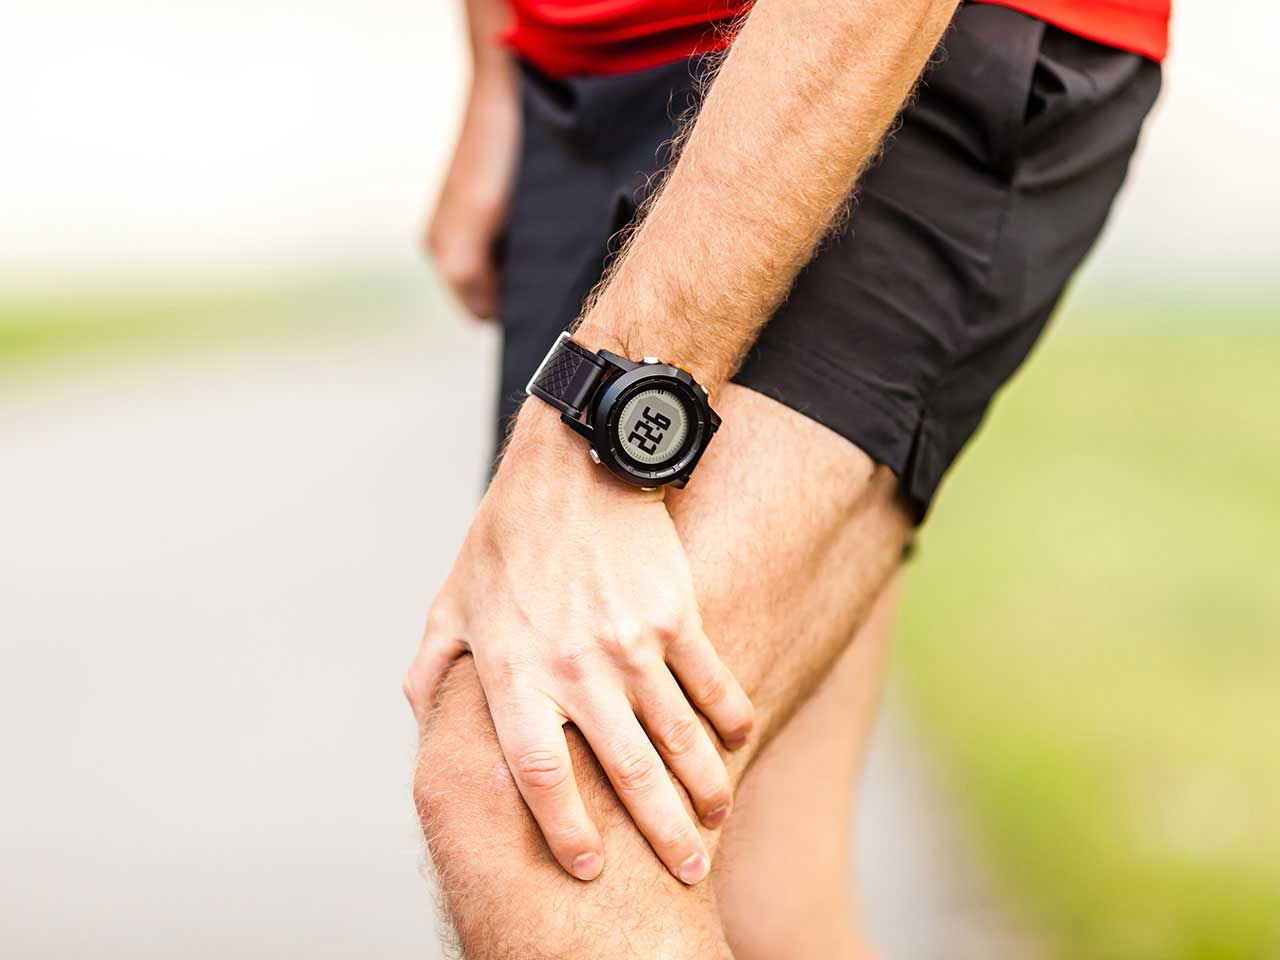 Male runner holding knee for pain relief